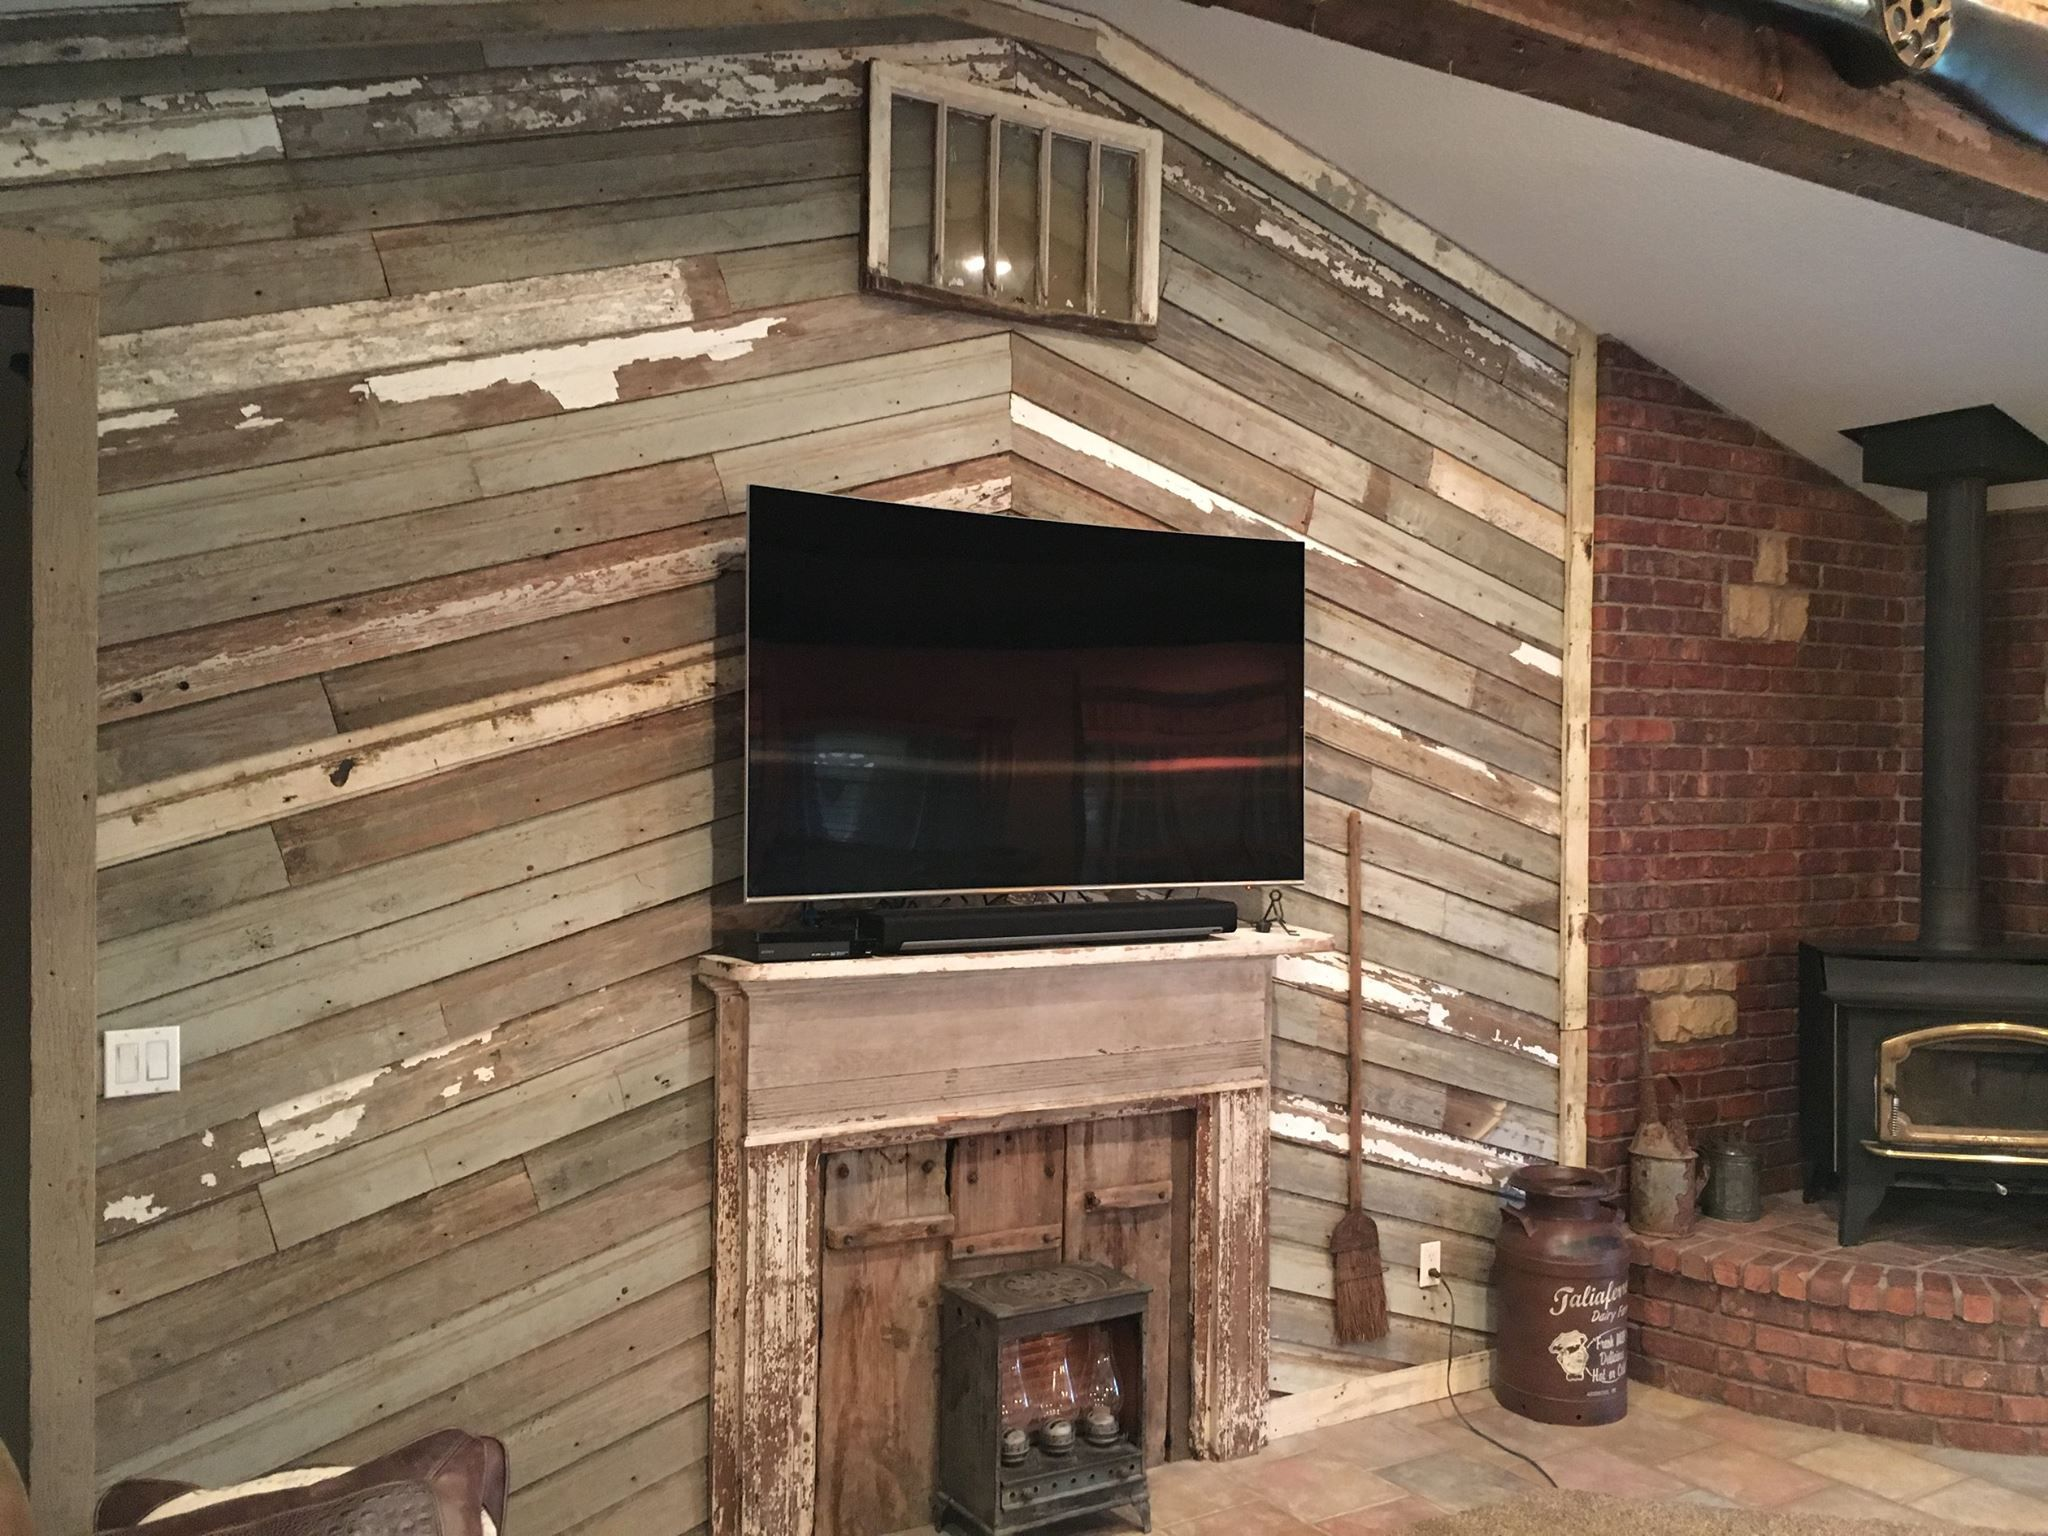 Unique Wood Wall Built Using Our Reclaimed Lumber Antique Lumber Company Wood Wall Wood Barn Wood